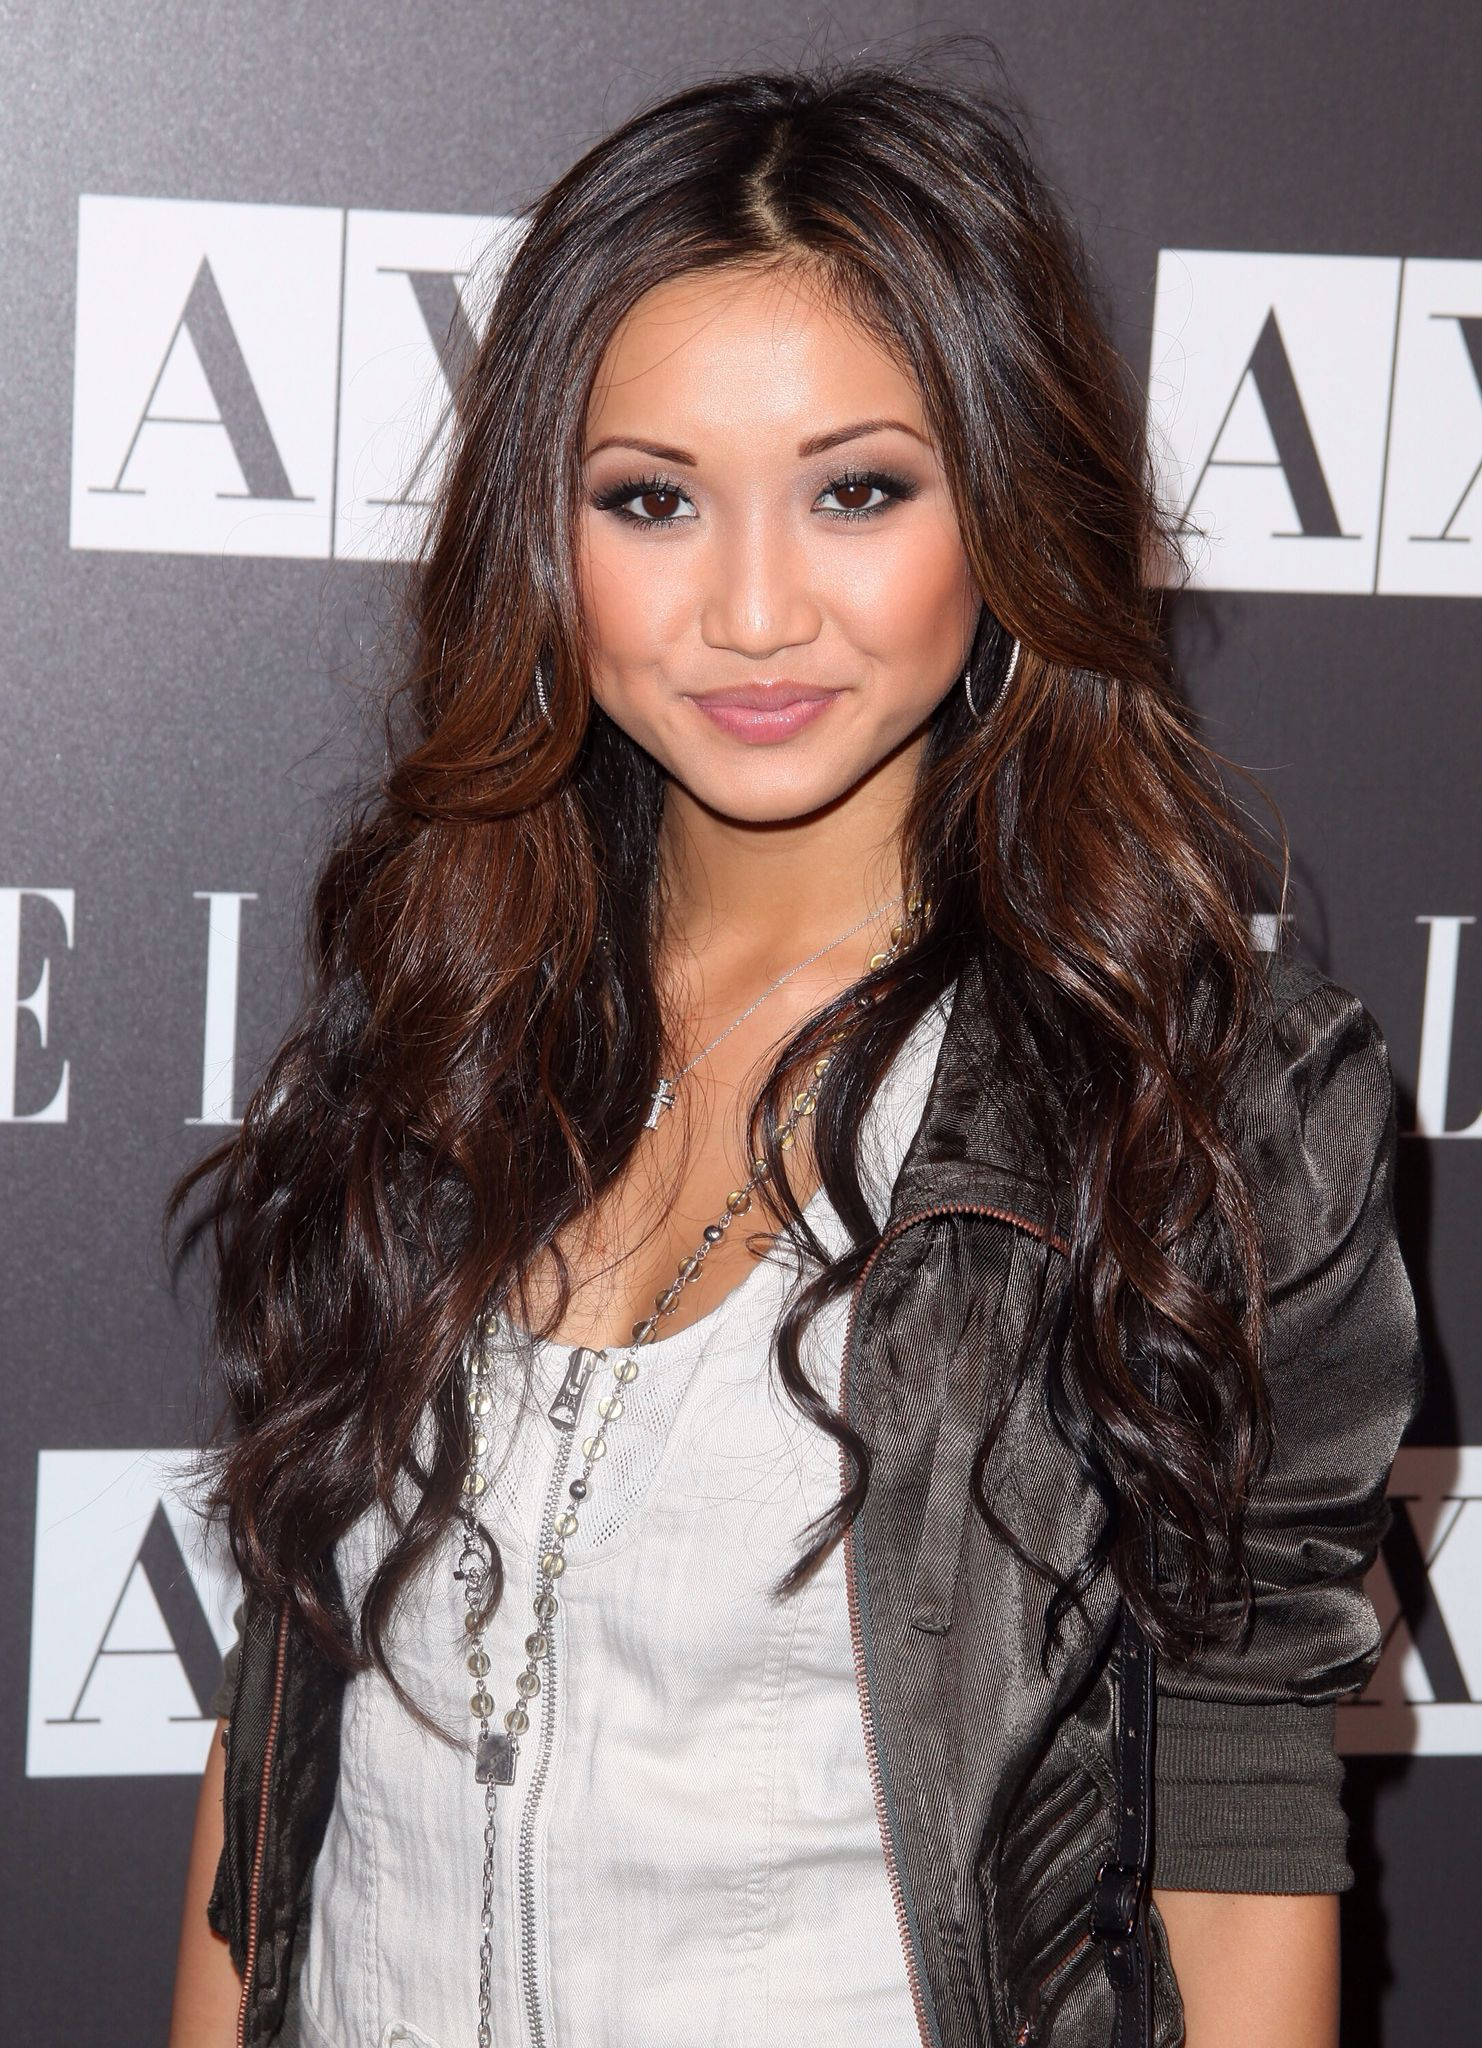 Pin by ghost rider on brenda song pinterest brenda song and makeup